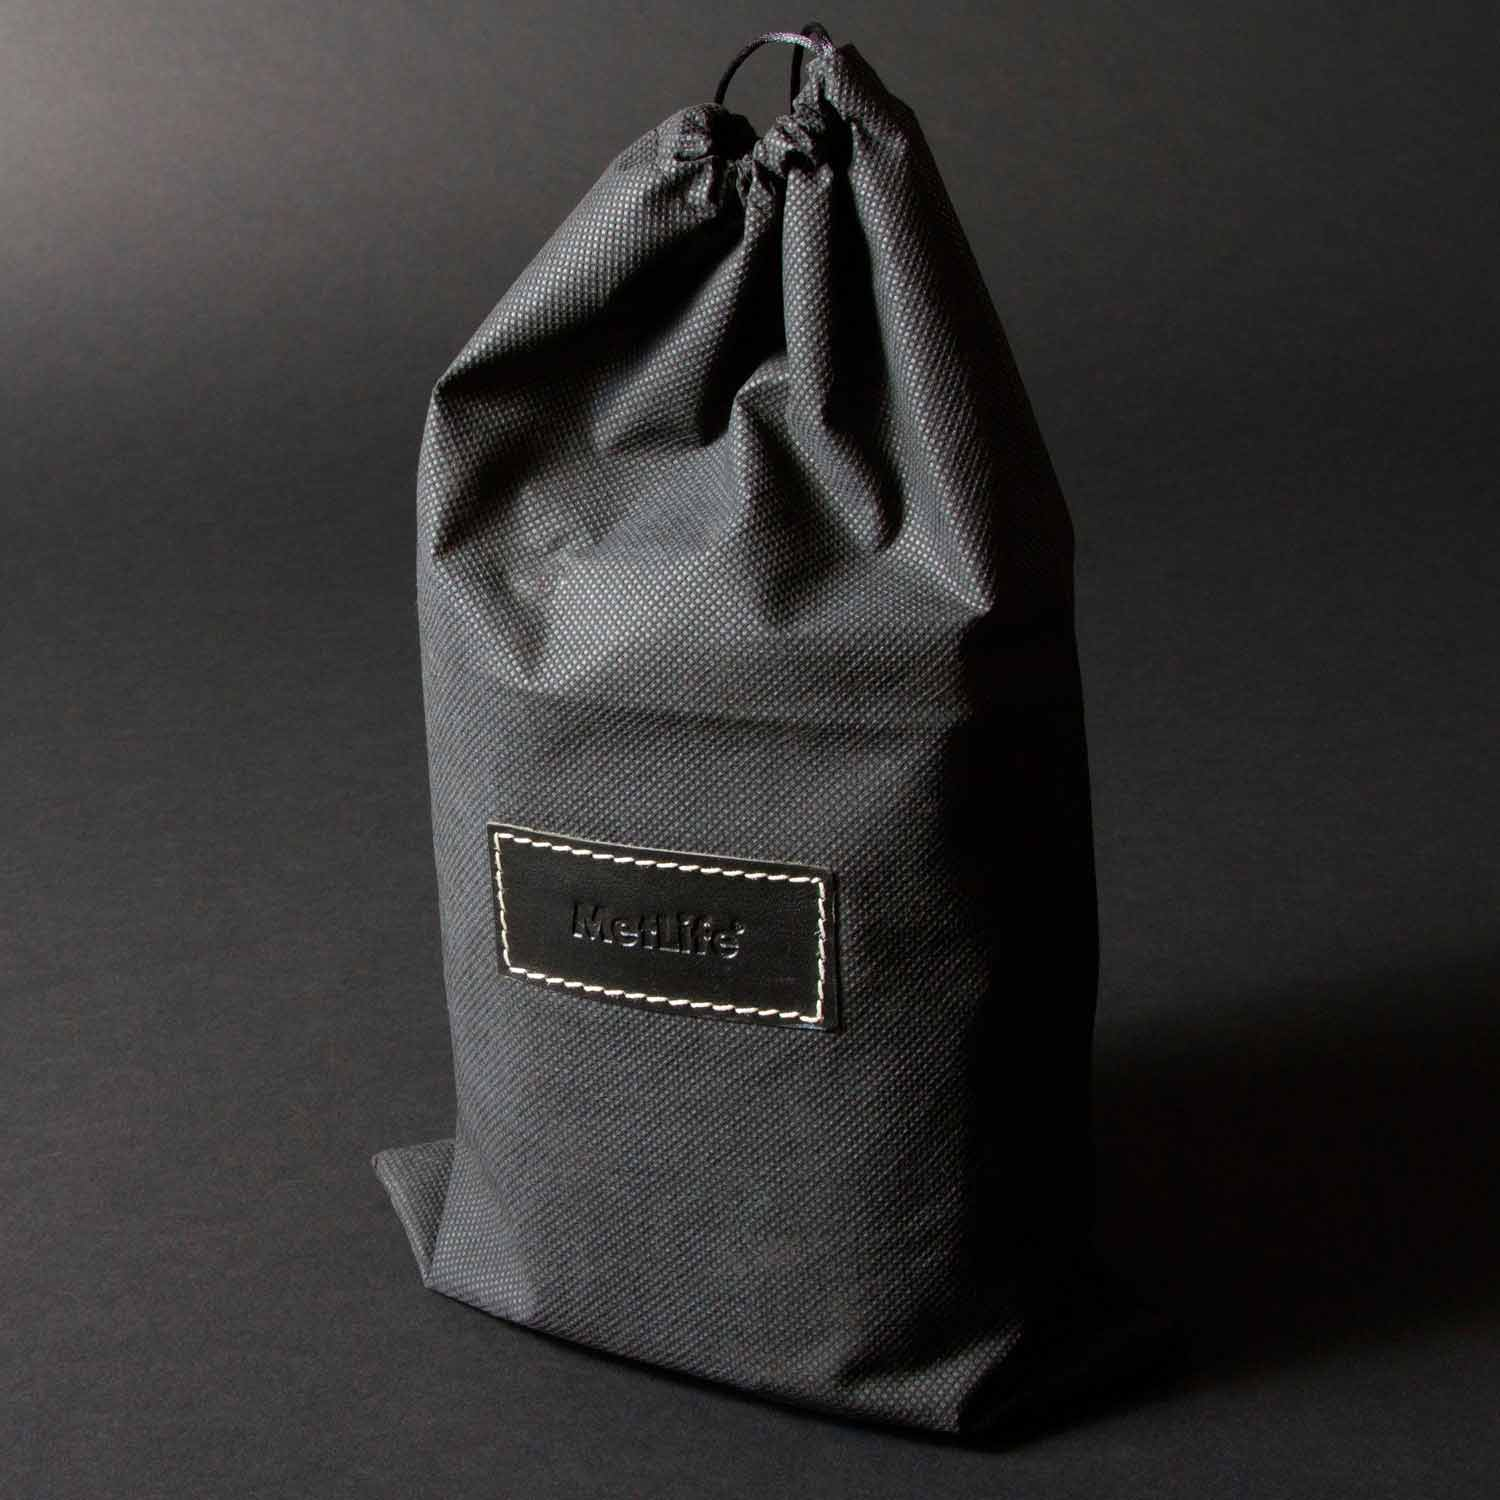 Bolsa negra packaging